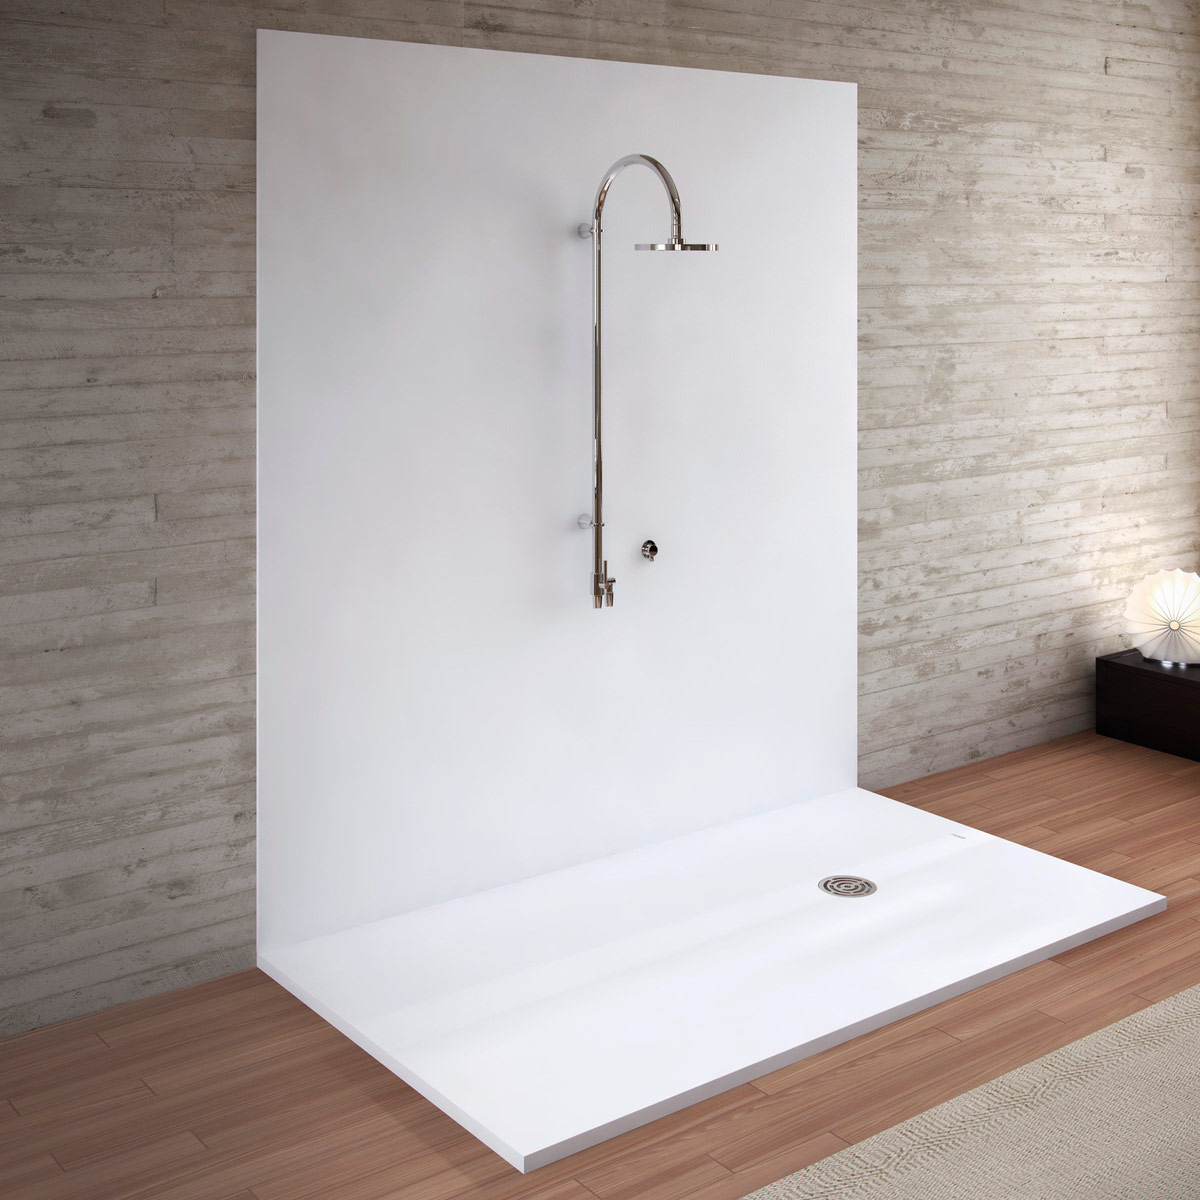 renovate a bathroom without works